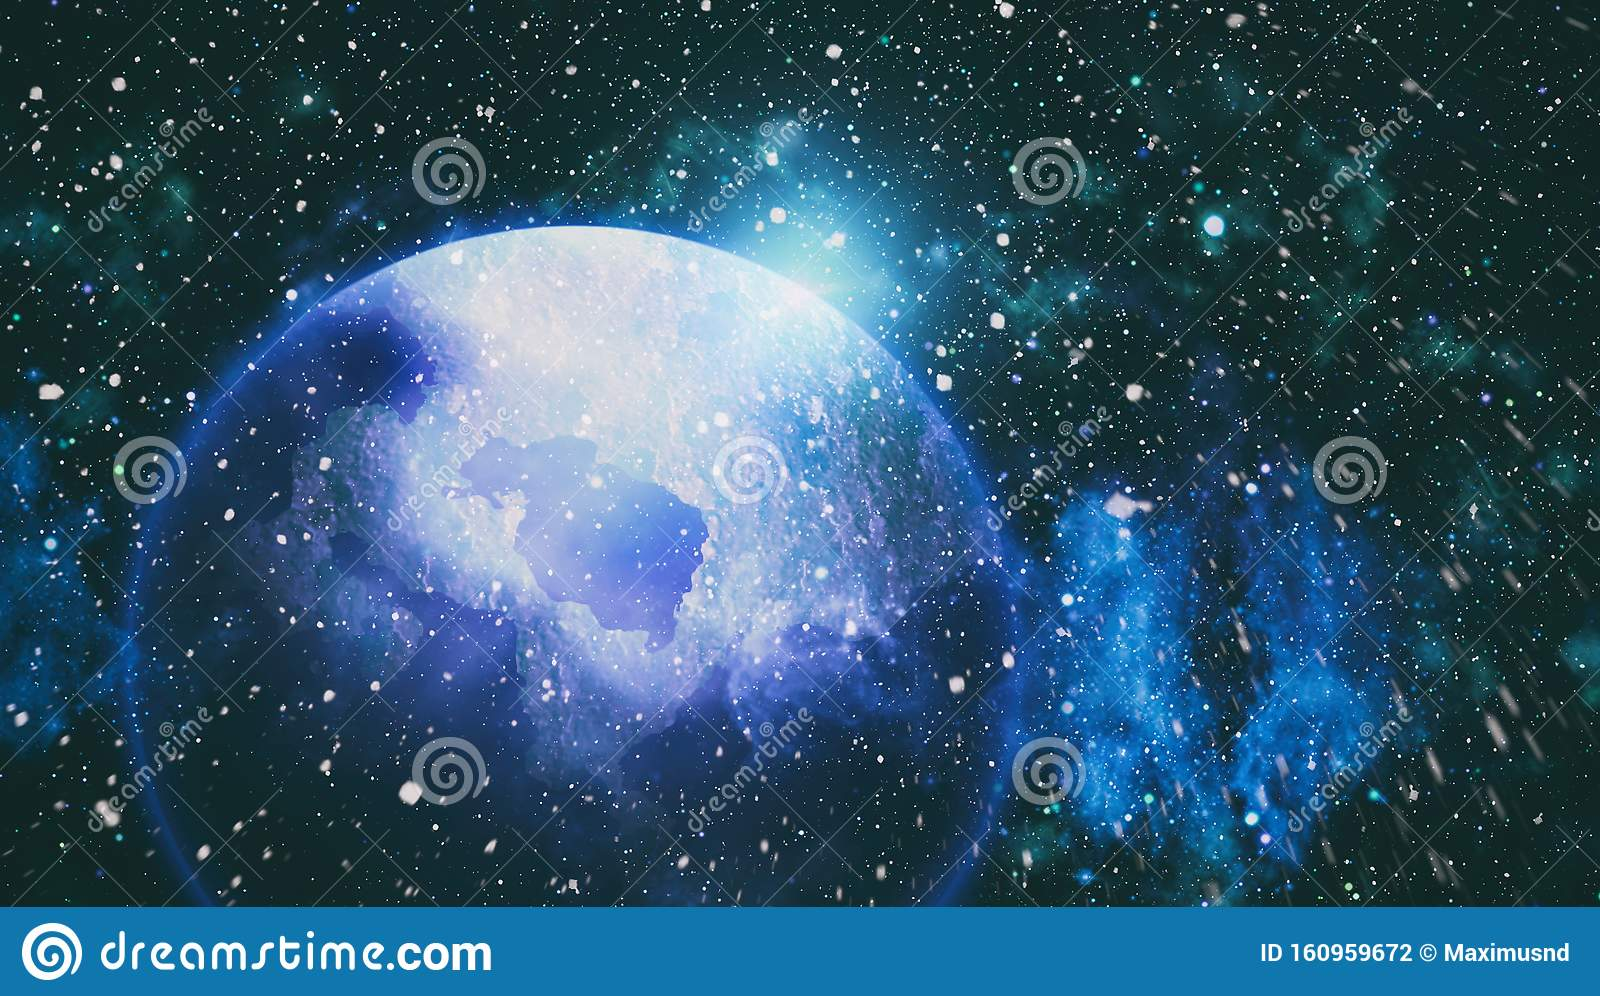 space background nebula stars cosmic landscape beautiful science fiction wallpaper endless deep high definition star 160959672